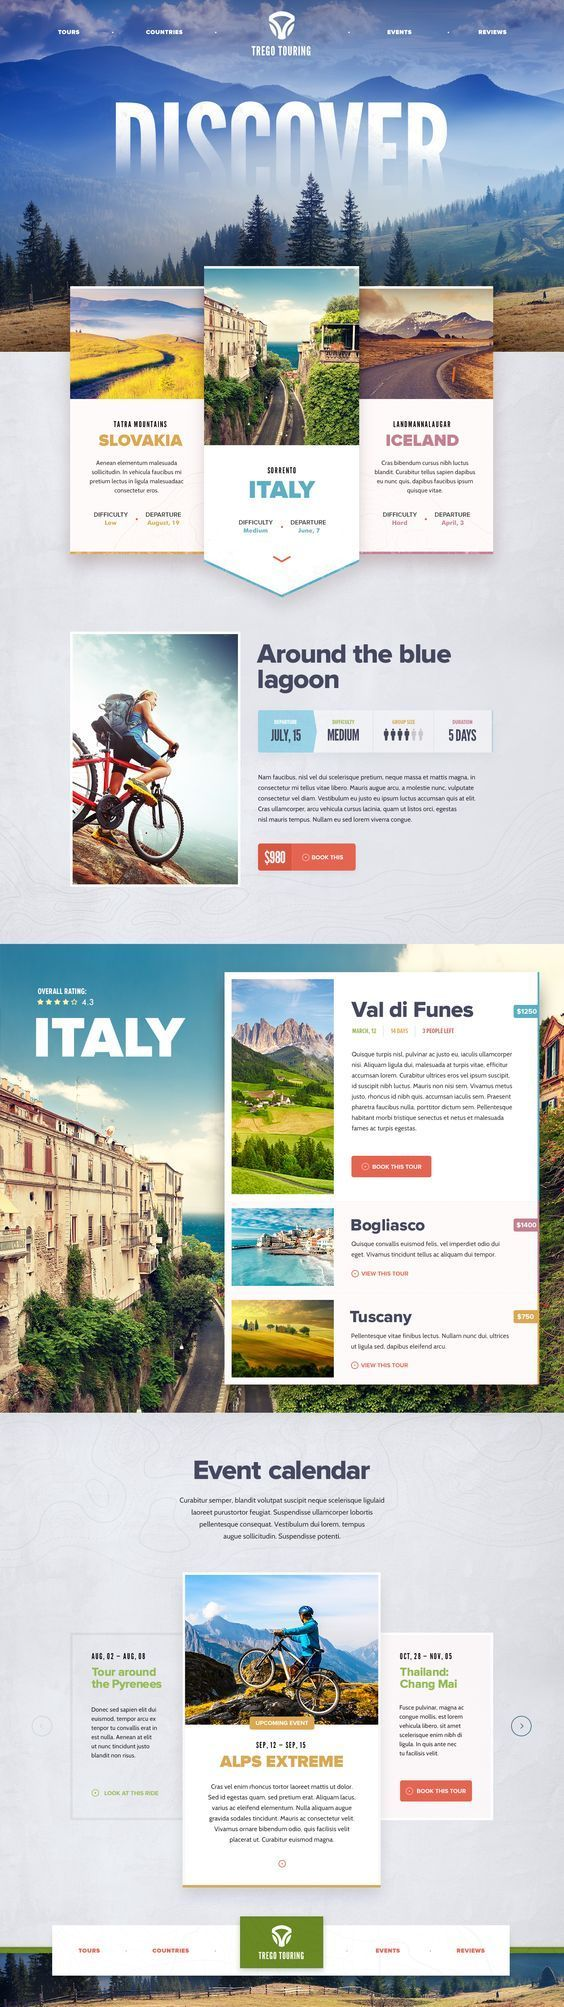 Trego Touring (guided bicycle tours) Ui design concept and visual style by Mike | Creative Mints: